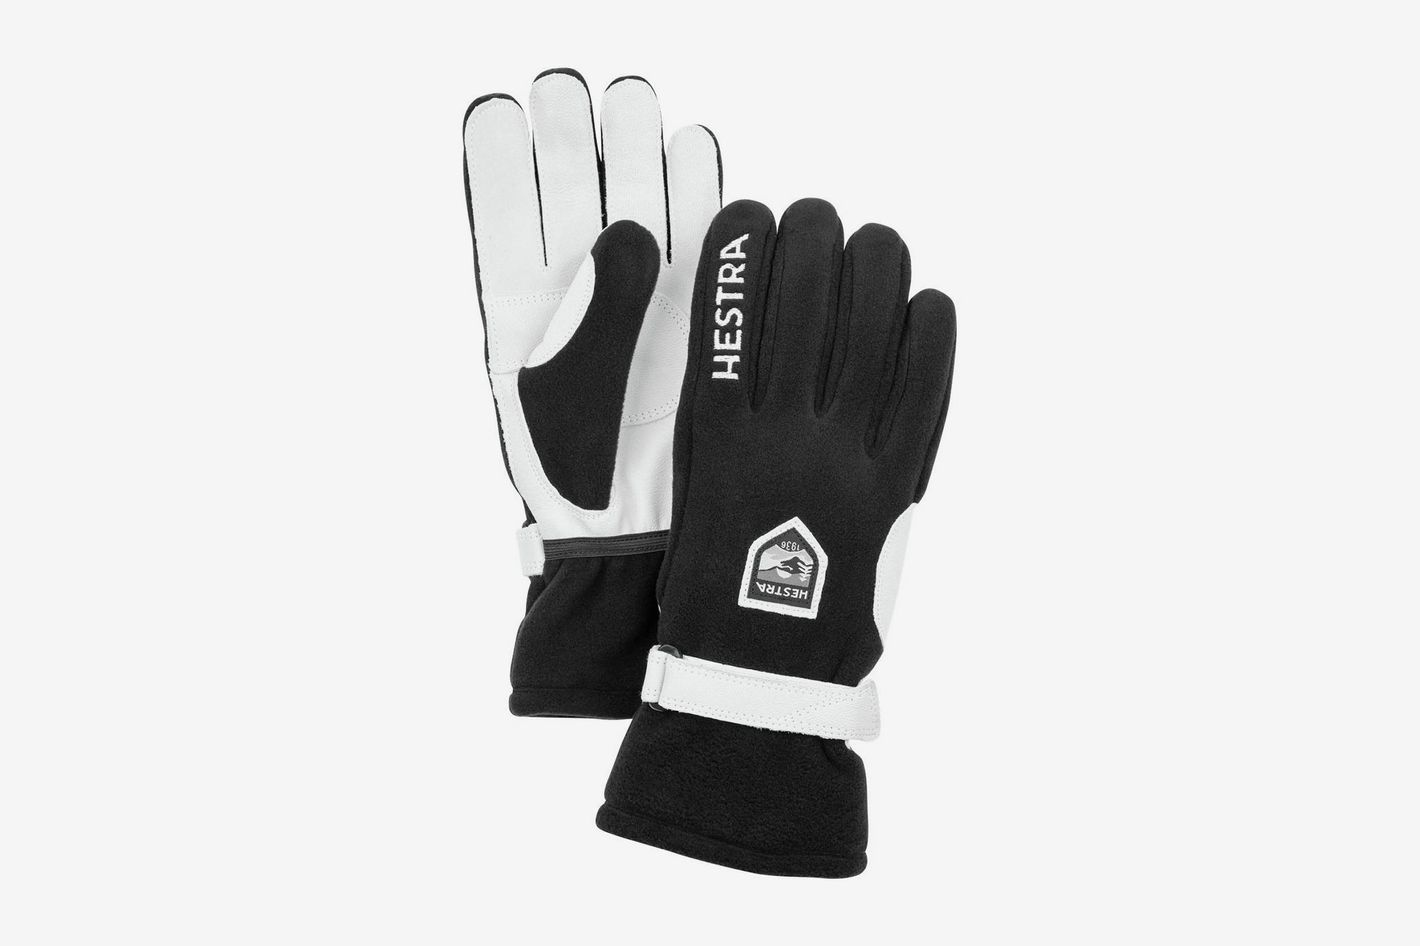 Hestra Winter Tour Glove